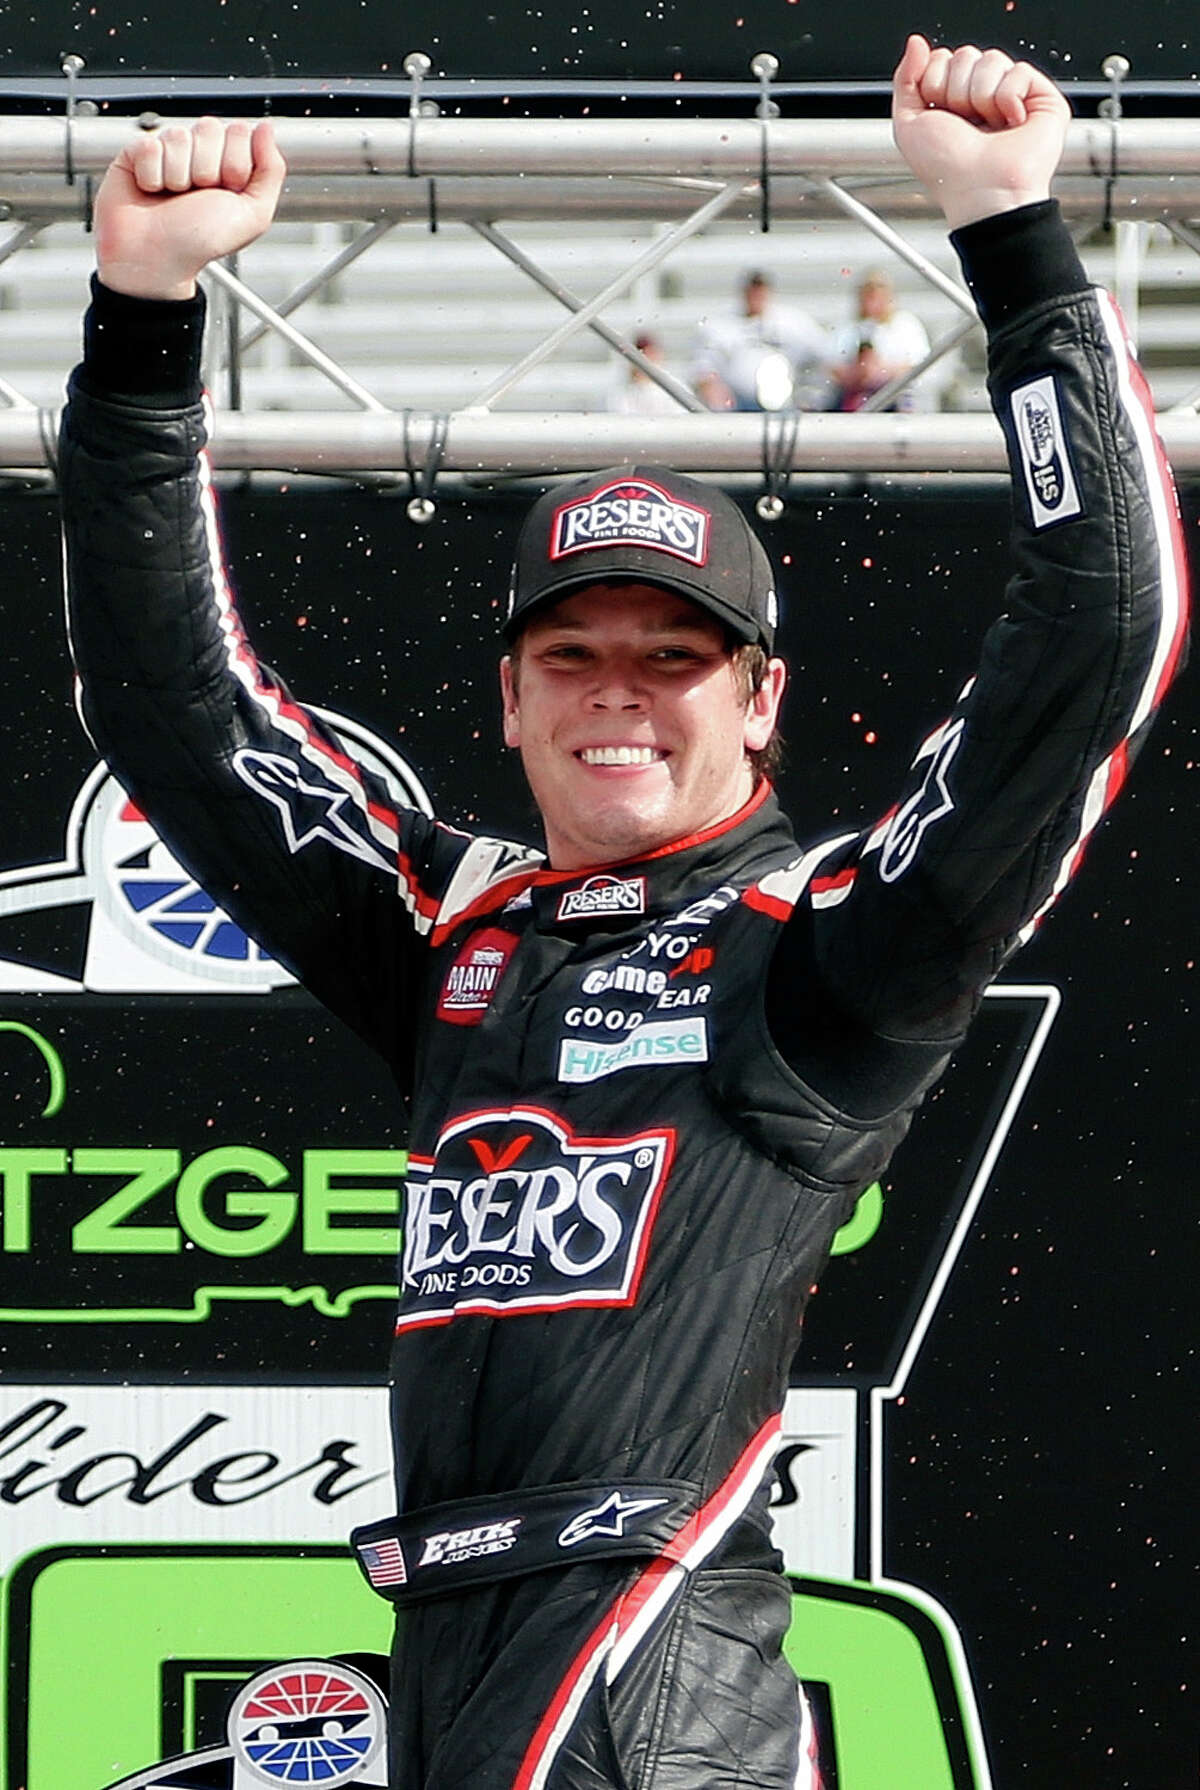 BRISTOL, TN - APRIL 22: Erik Jones, driver of the #20 Reser's American Classic Toyota, celebrates in Victory Lane after winning the NASCAR XFINITY Series Fitzgerald Glider Kits 300 at Bristol Motor Speedway on April 22, 2017 in Bristol, Tennessee. (Photo by Matt Sullivan/Getty Images)